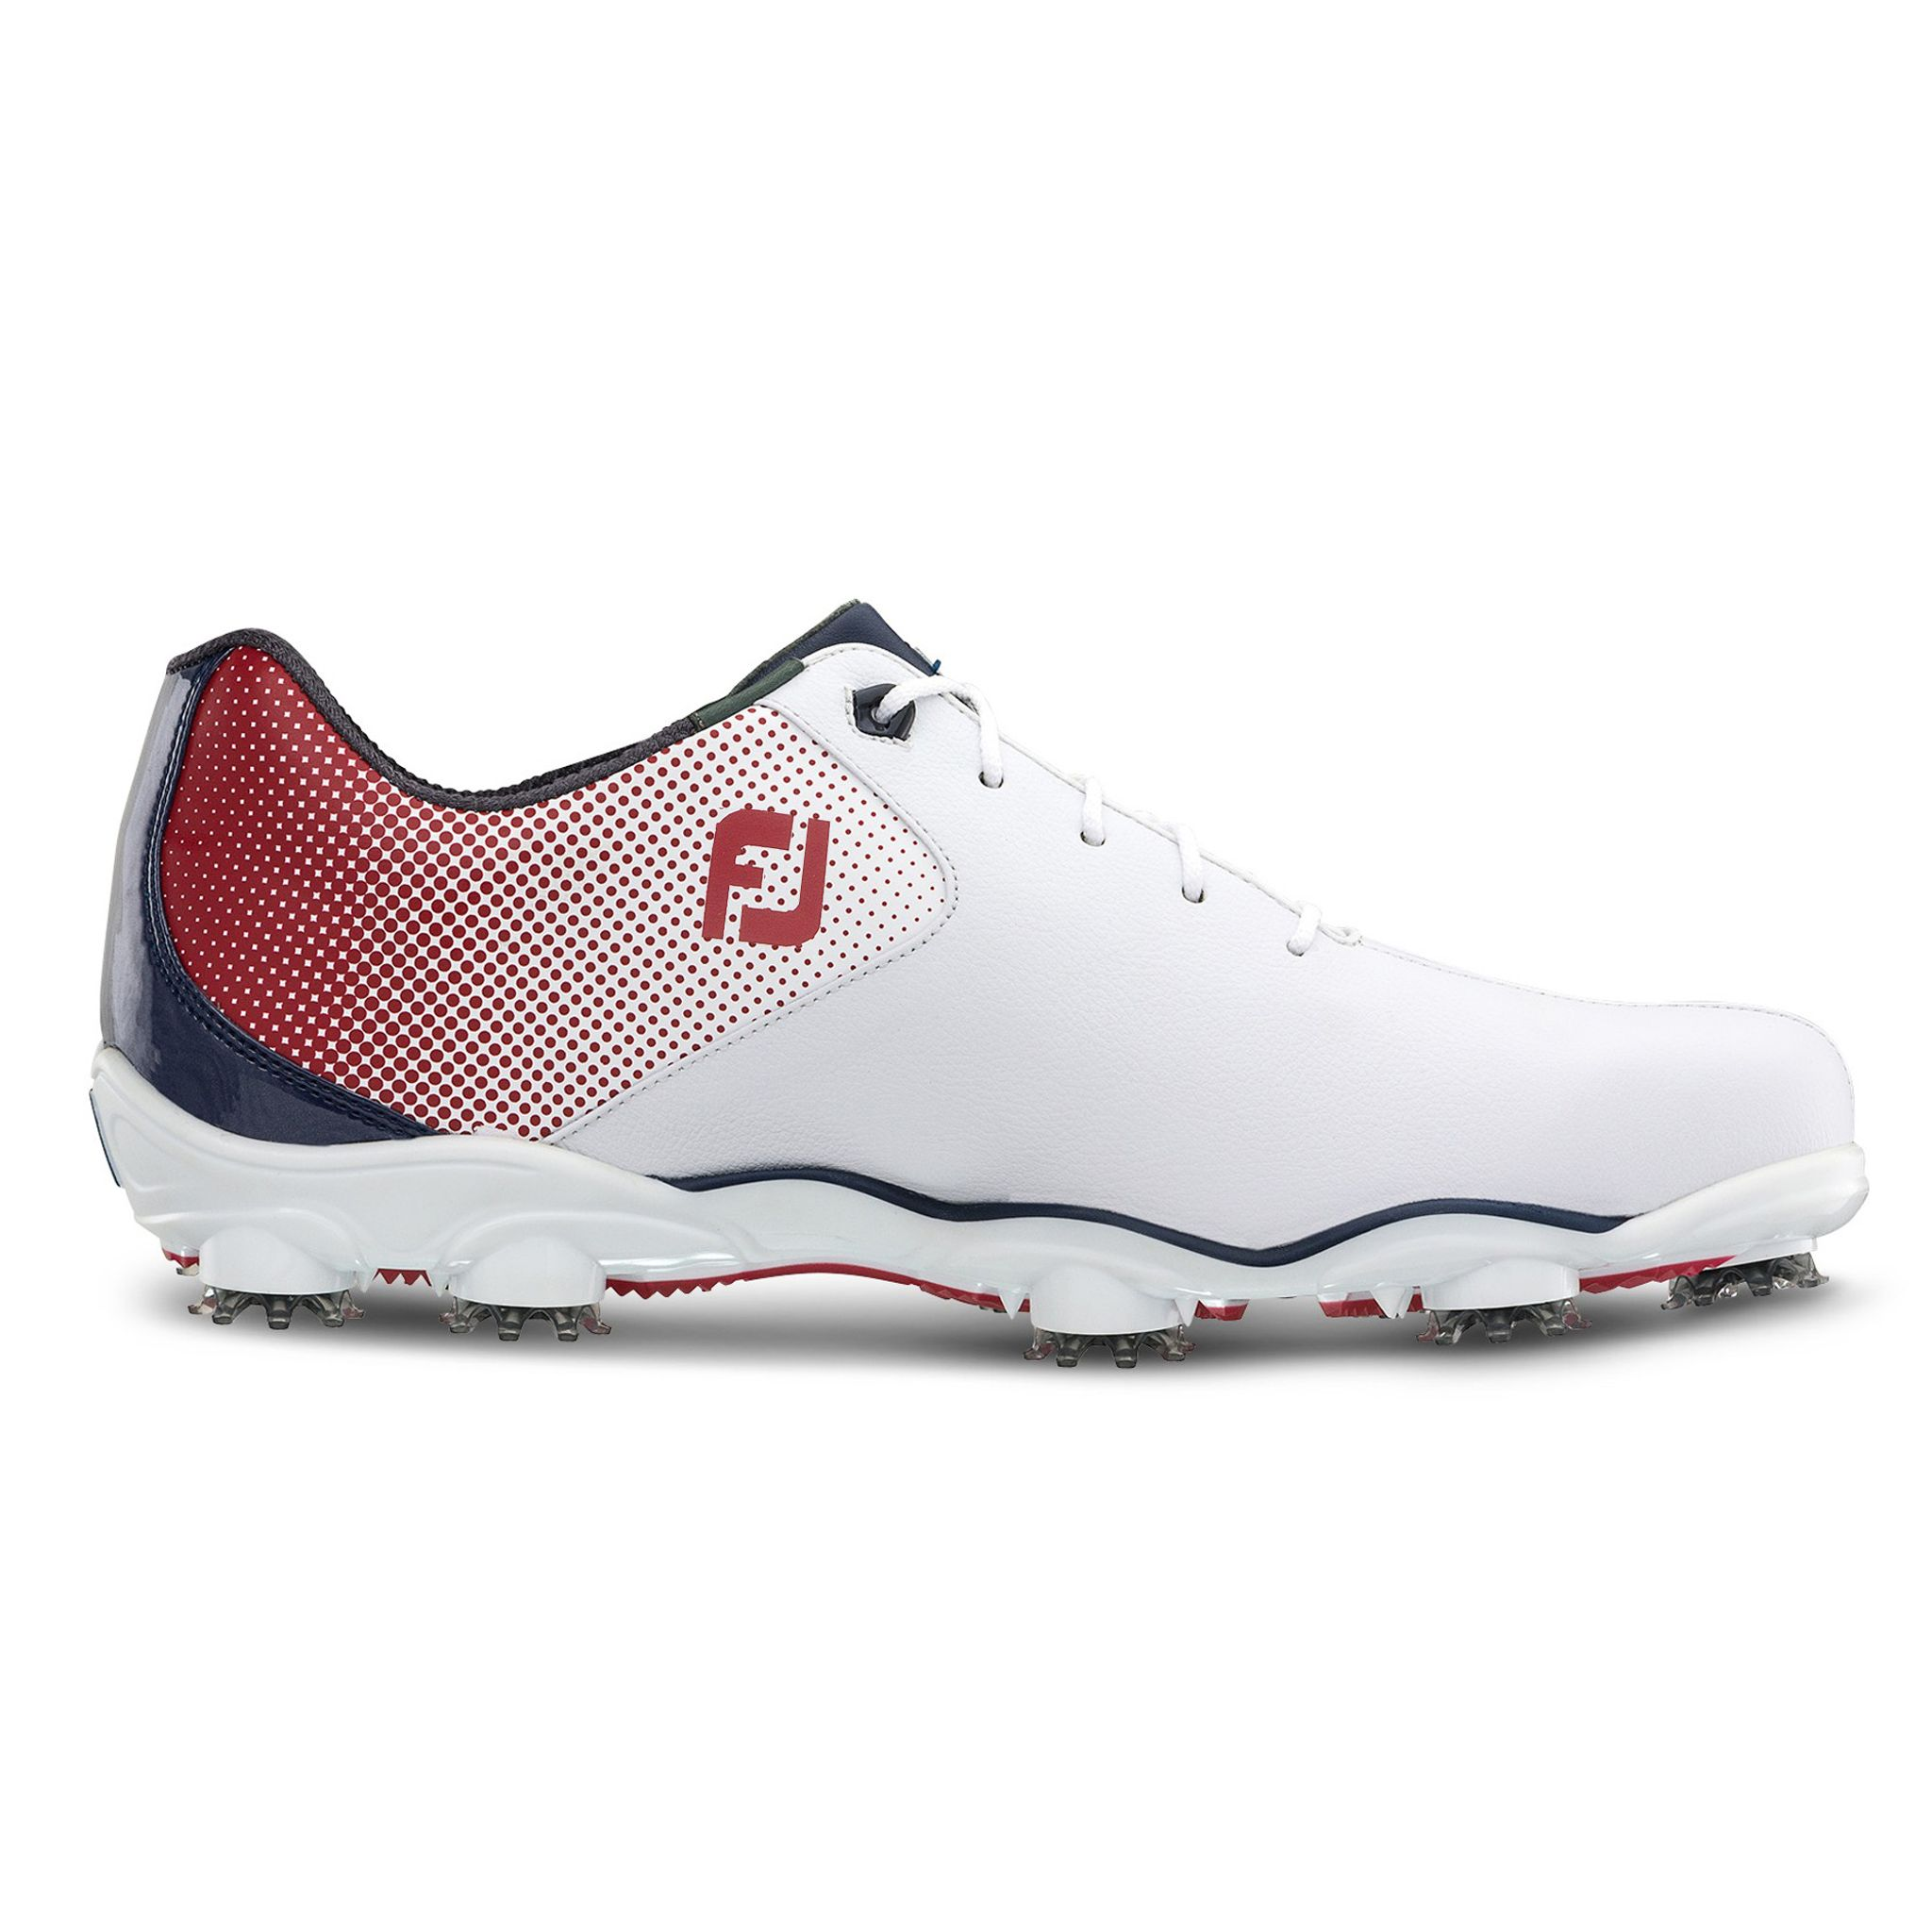 a183d7350cb FootJoy Previous Season Style DNA Helix Shoes